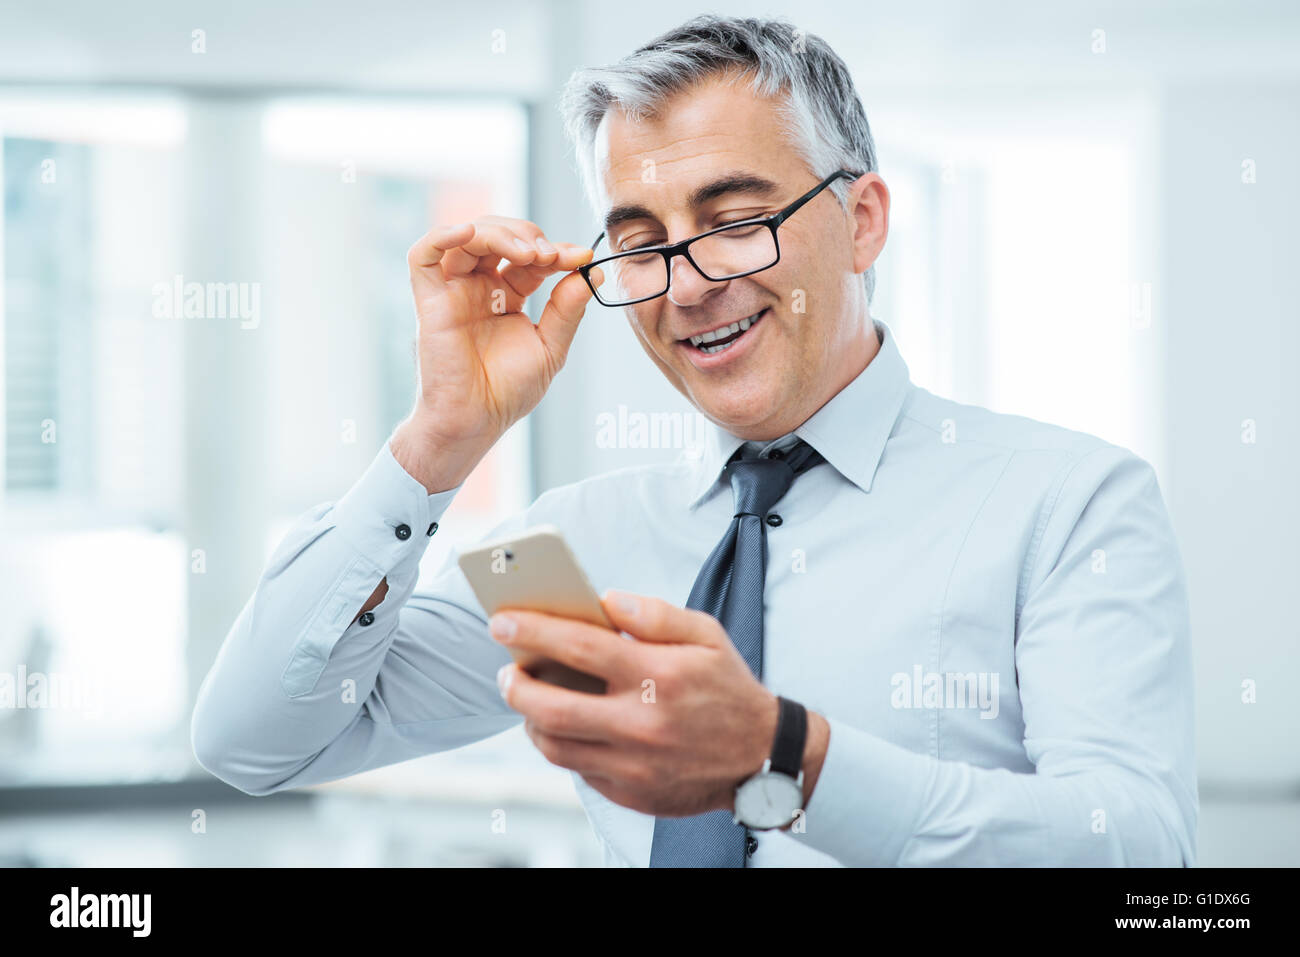 Smiling businessman with eyesight problems, he is adjusting his glasses and reading something on his mobile phone - Stock Image